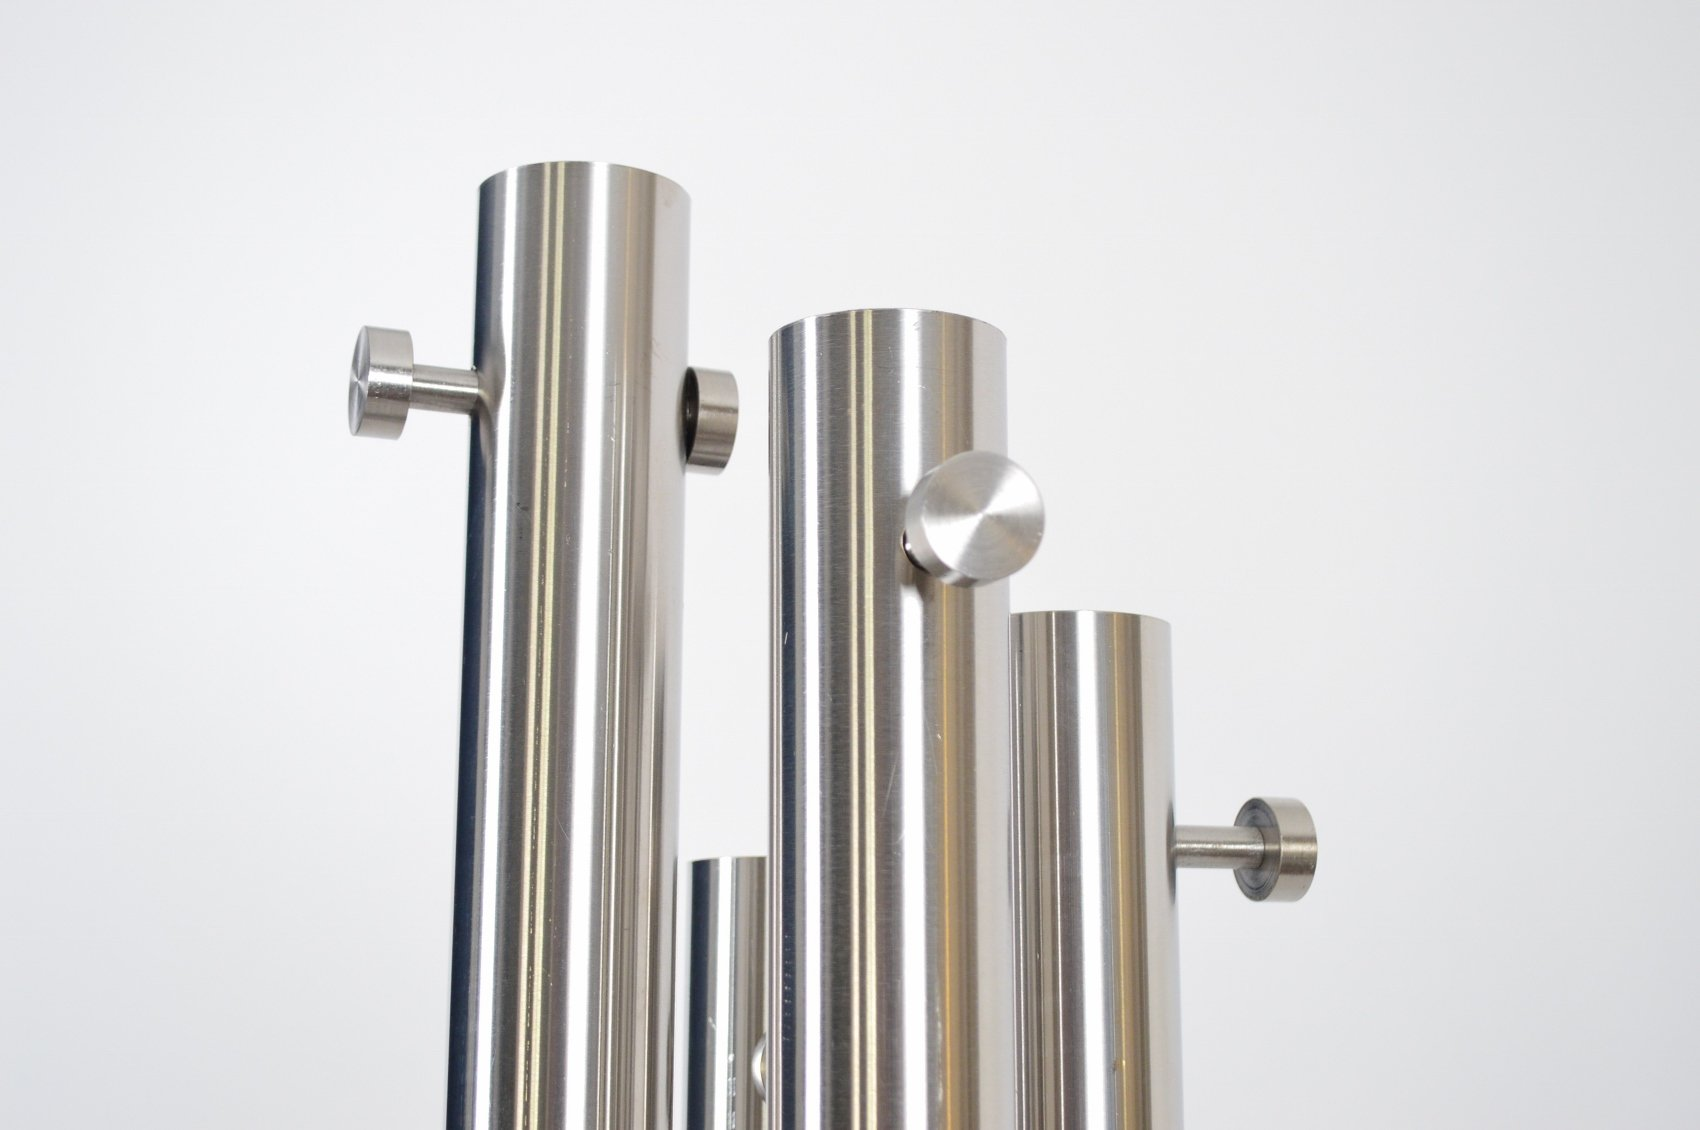 italian stainless steel and marble coat rack with integrated light  - price per piece